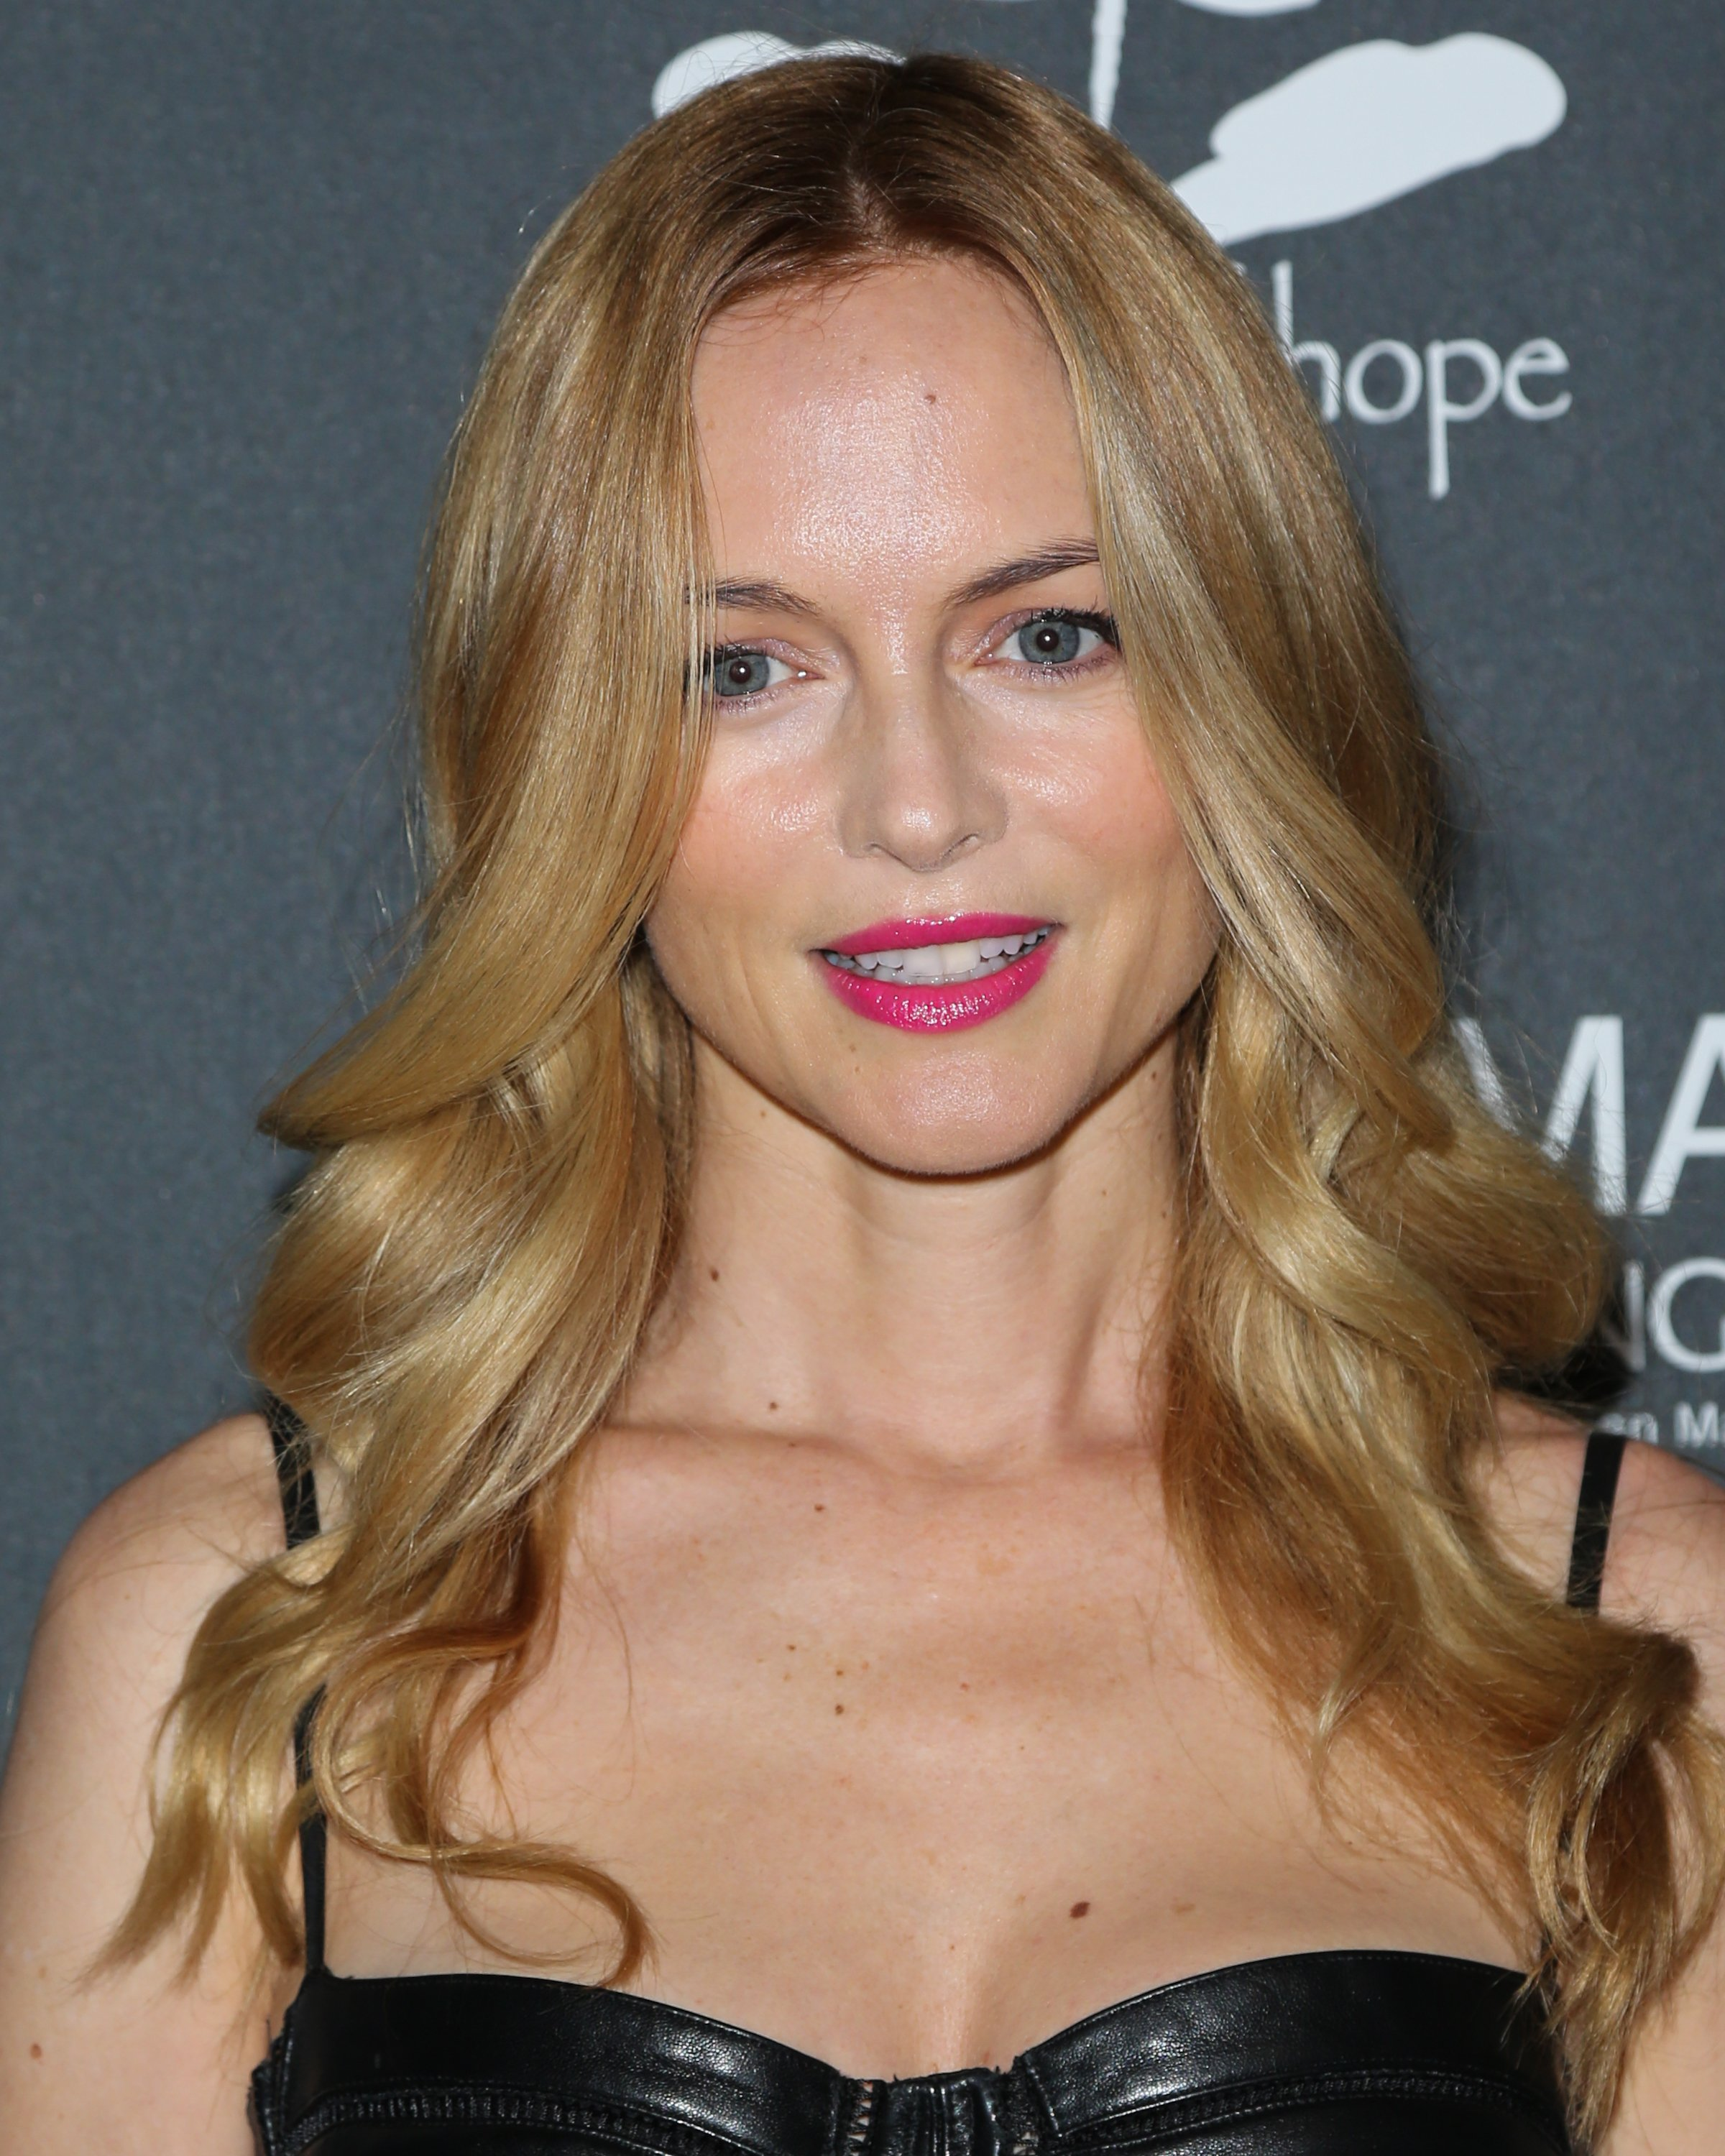 Heather Graham Echoes Of Hope's 3rd Annual Celebrity Poker Tournament in LA_062313_13.jpg